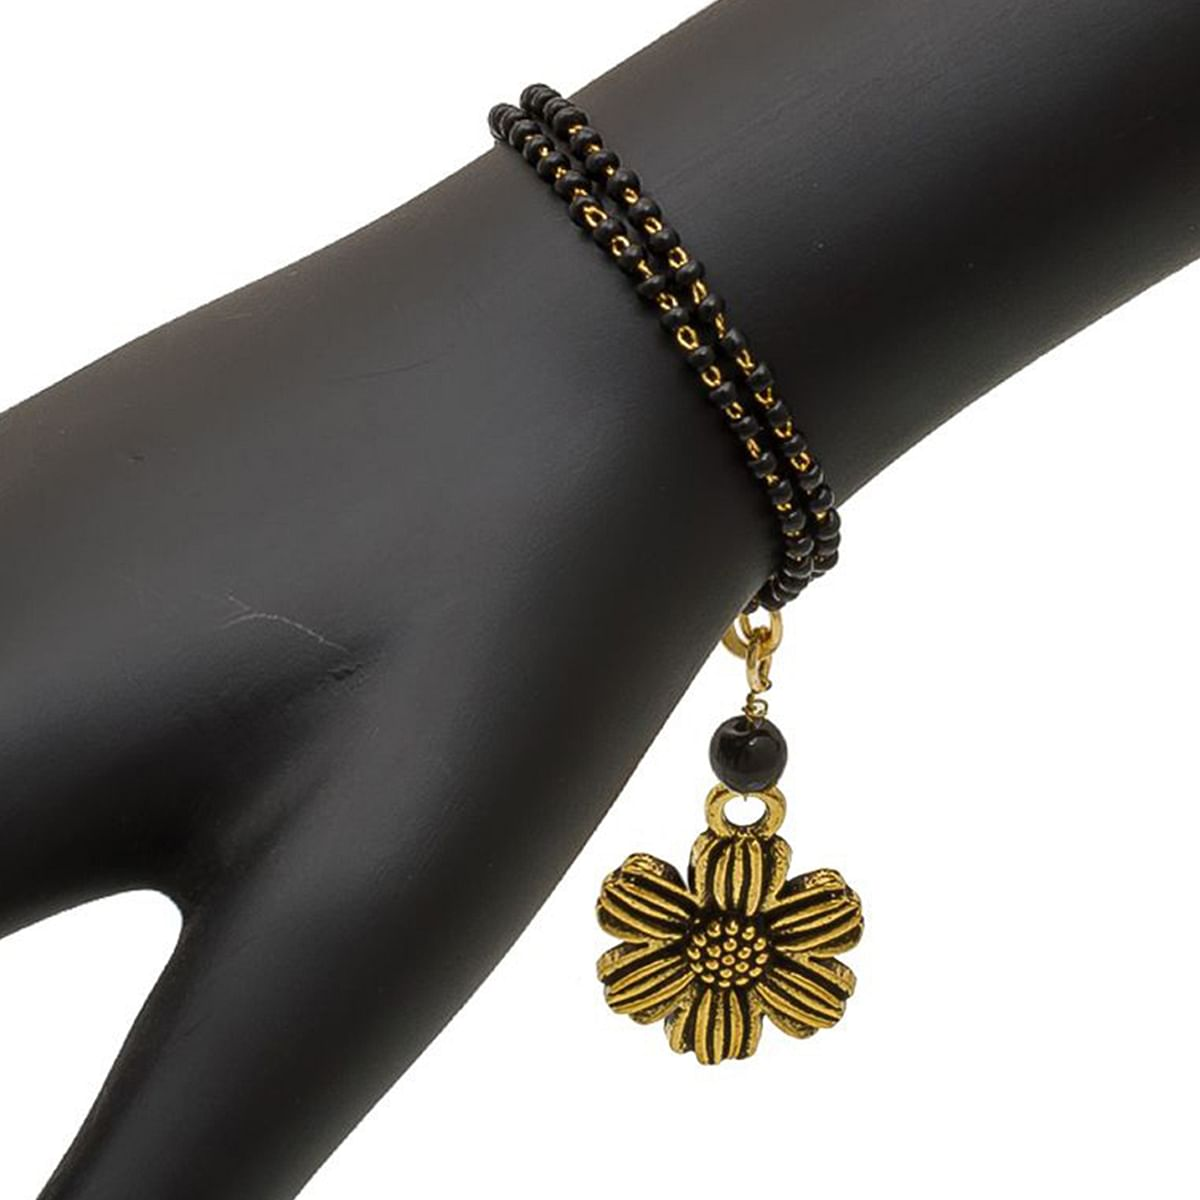 Dazzling Golden & Black Colored Mix Metal Bracelet Cum Bangle